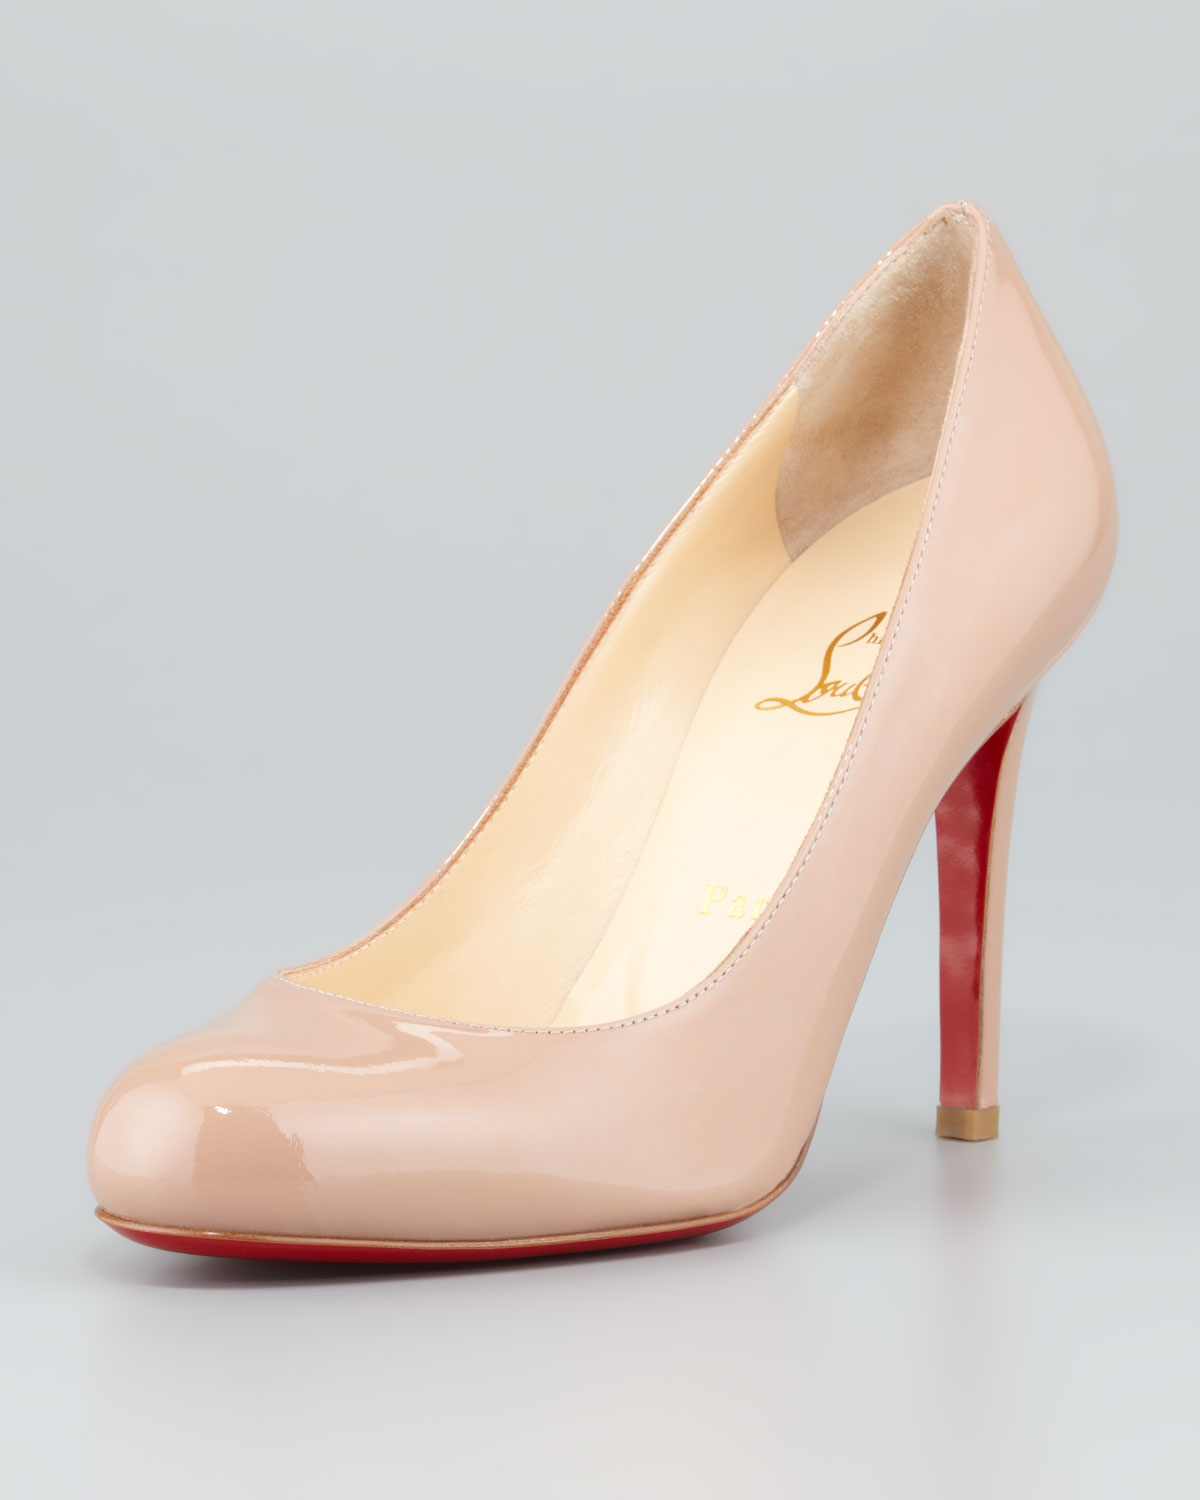 59c56987c37 Christian Louboutin Pink Simple Patent Red Sole Pump Nude